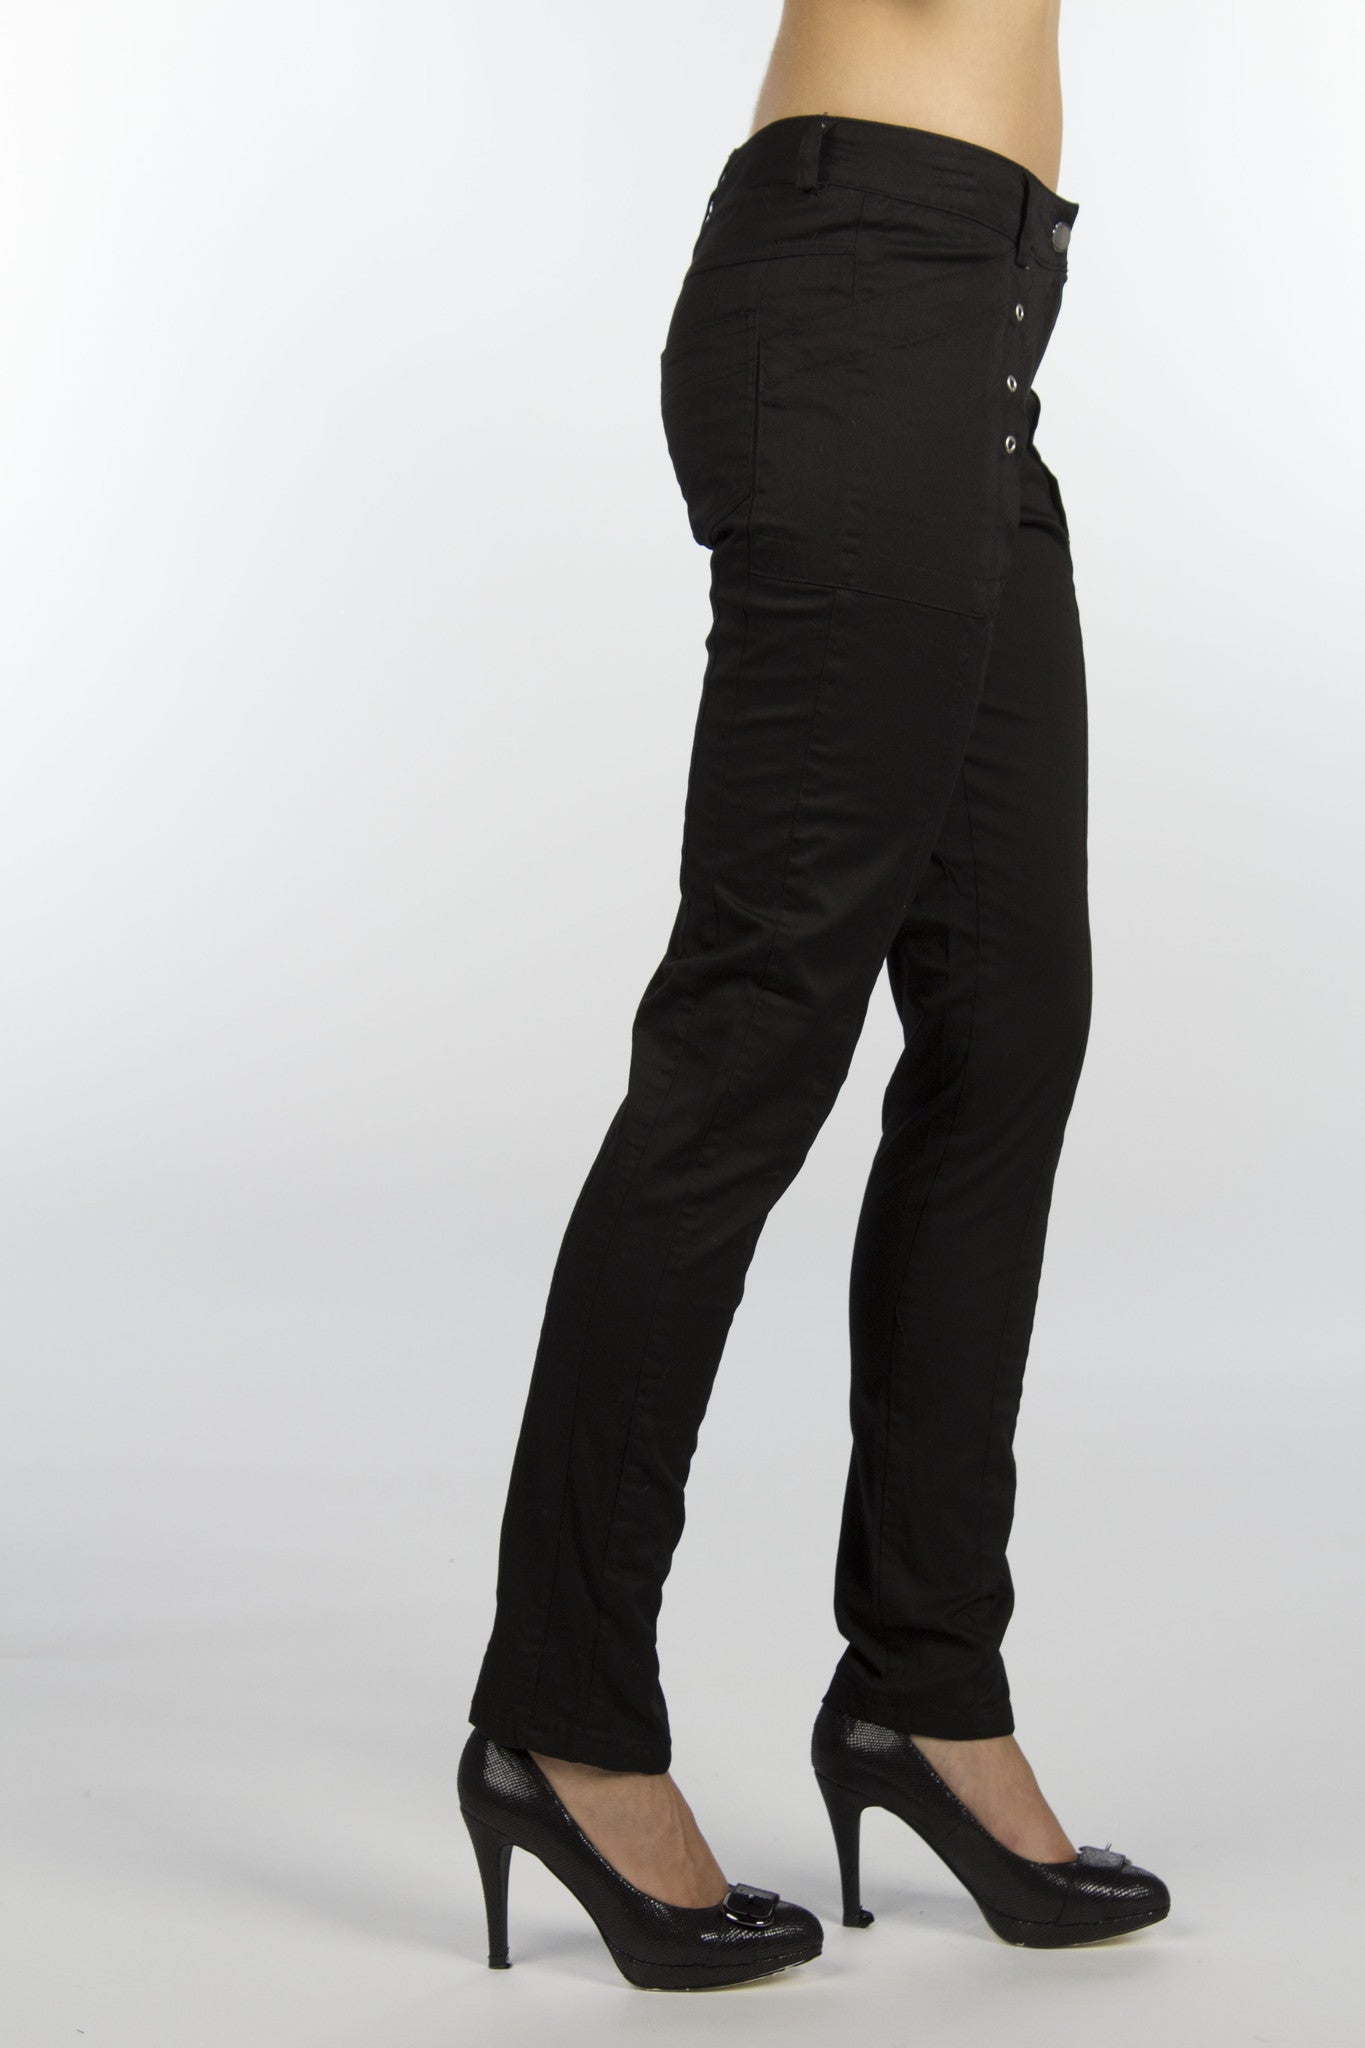 black cotton pants with silver grommets